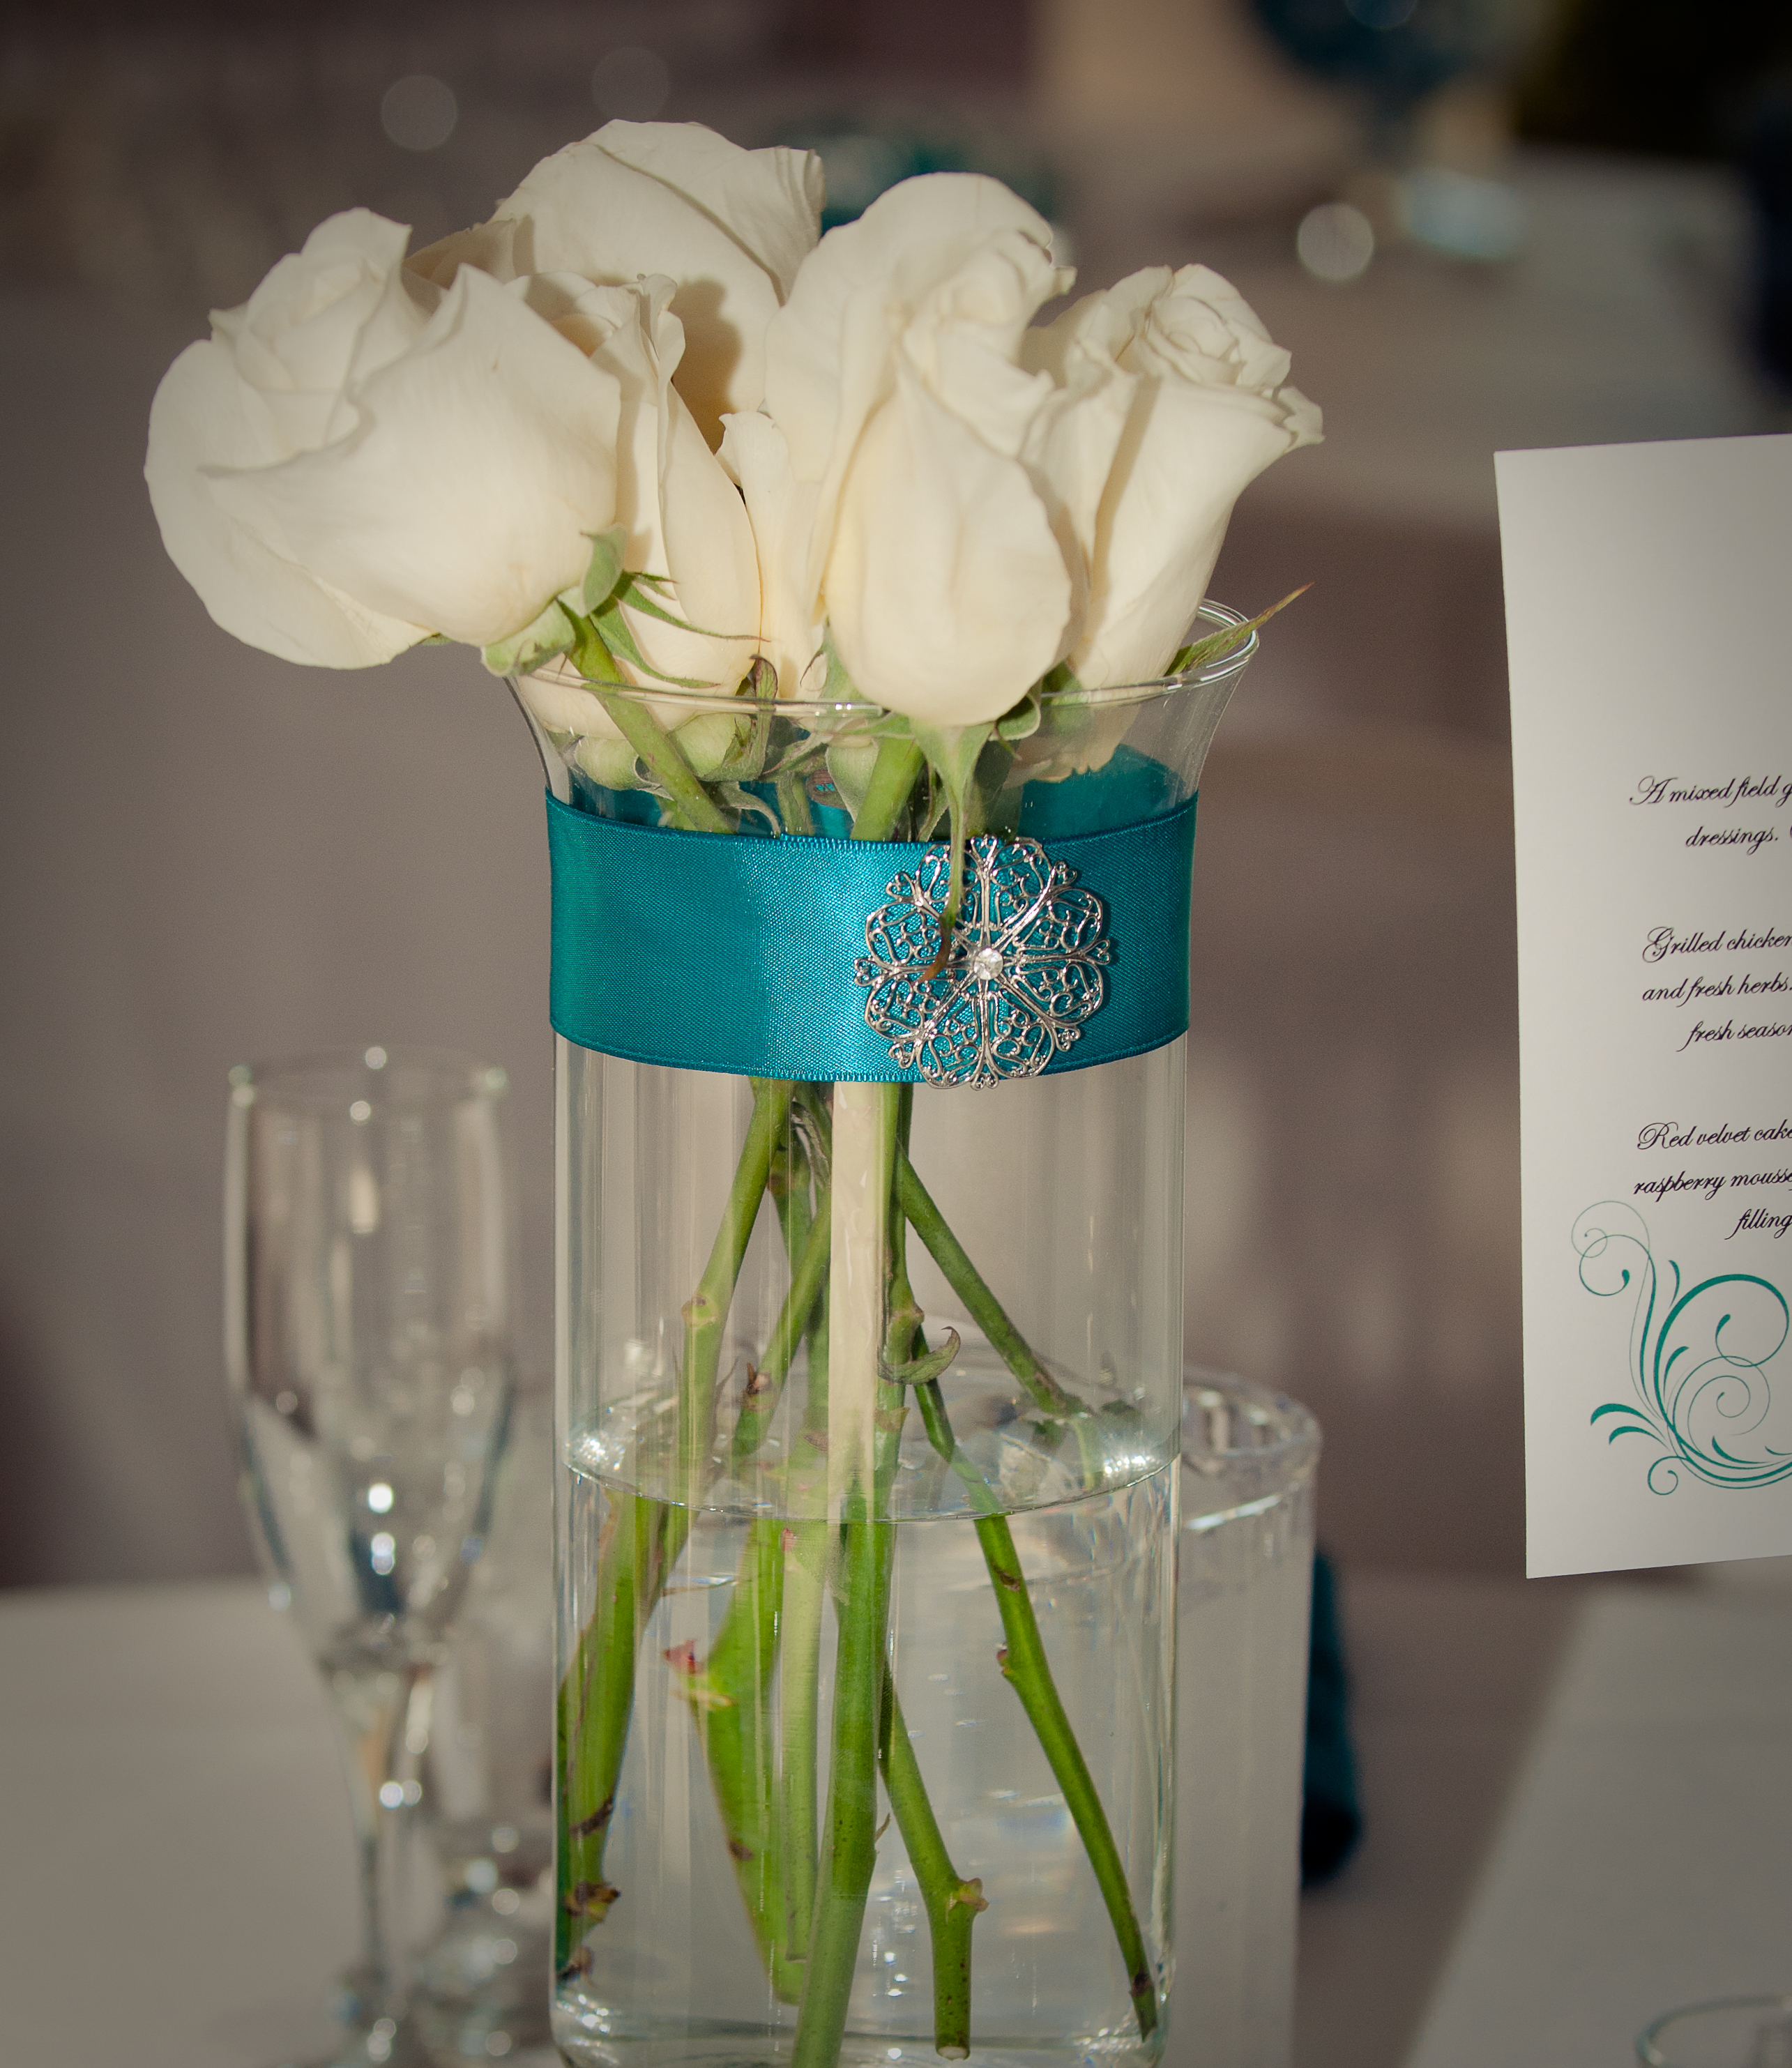 Ceremony, Reception, Flowers & Decor, white, pink, blue, green, silver